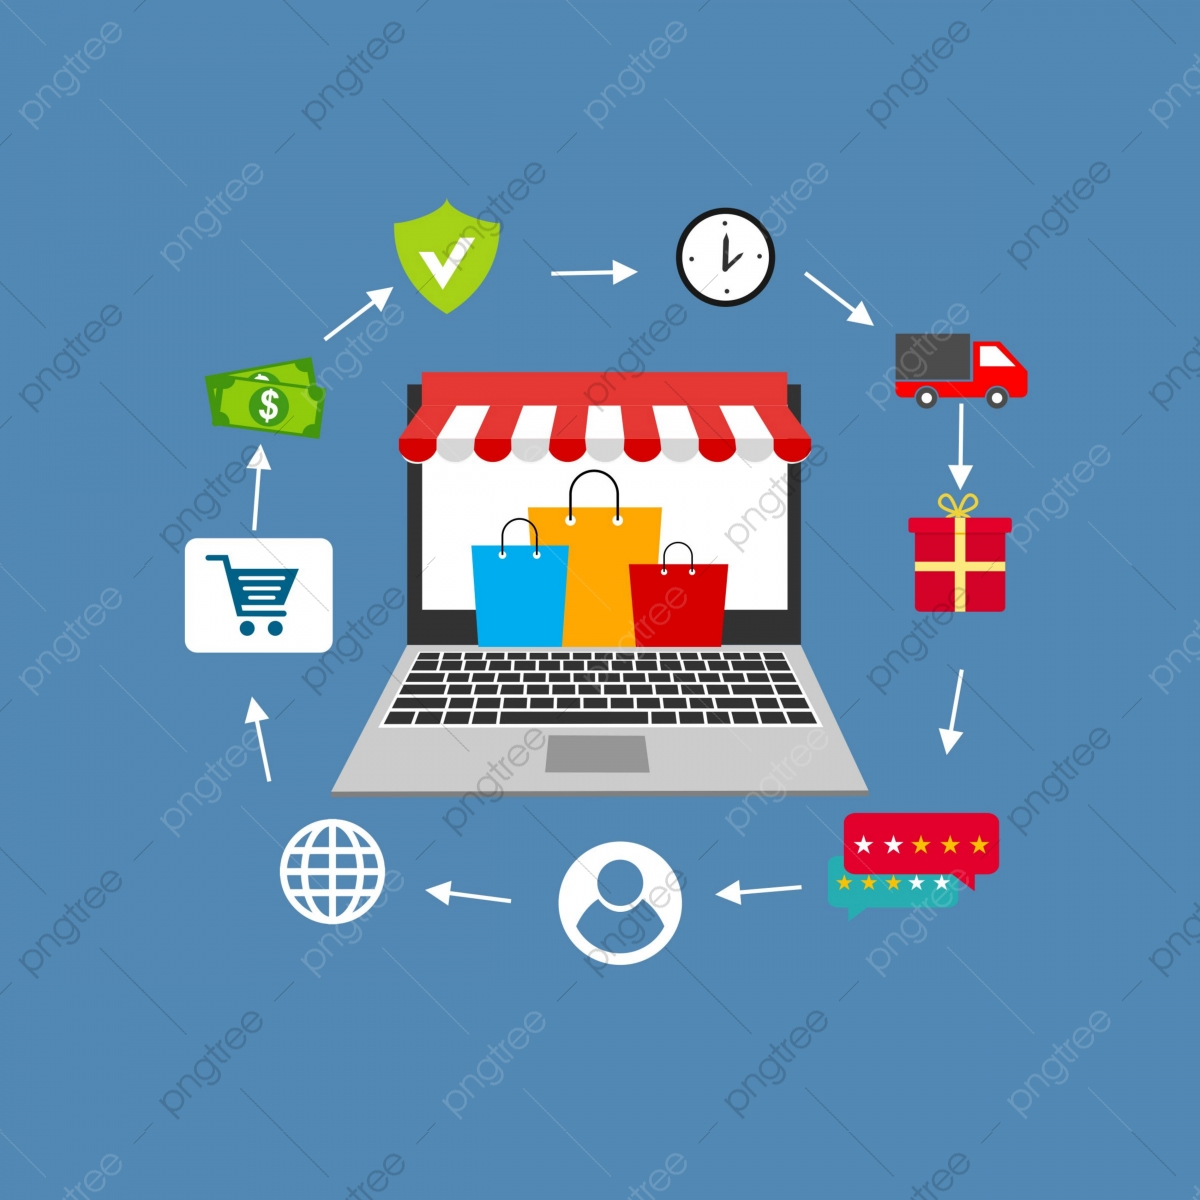 marketing png images vector and psd files free download on pngtree https pngtree com freepng concept of e commerce sales online shopping digital marketing vector illustration 5232949 html